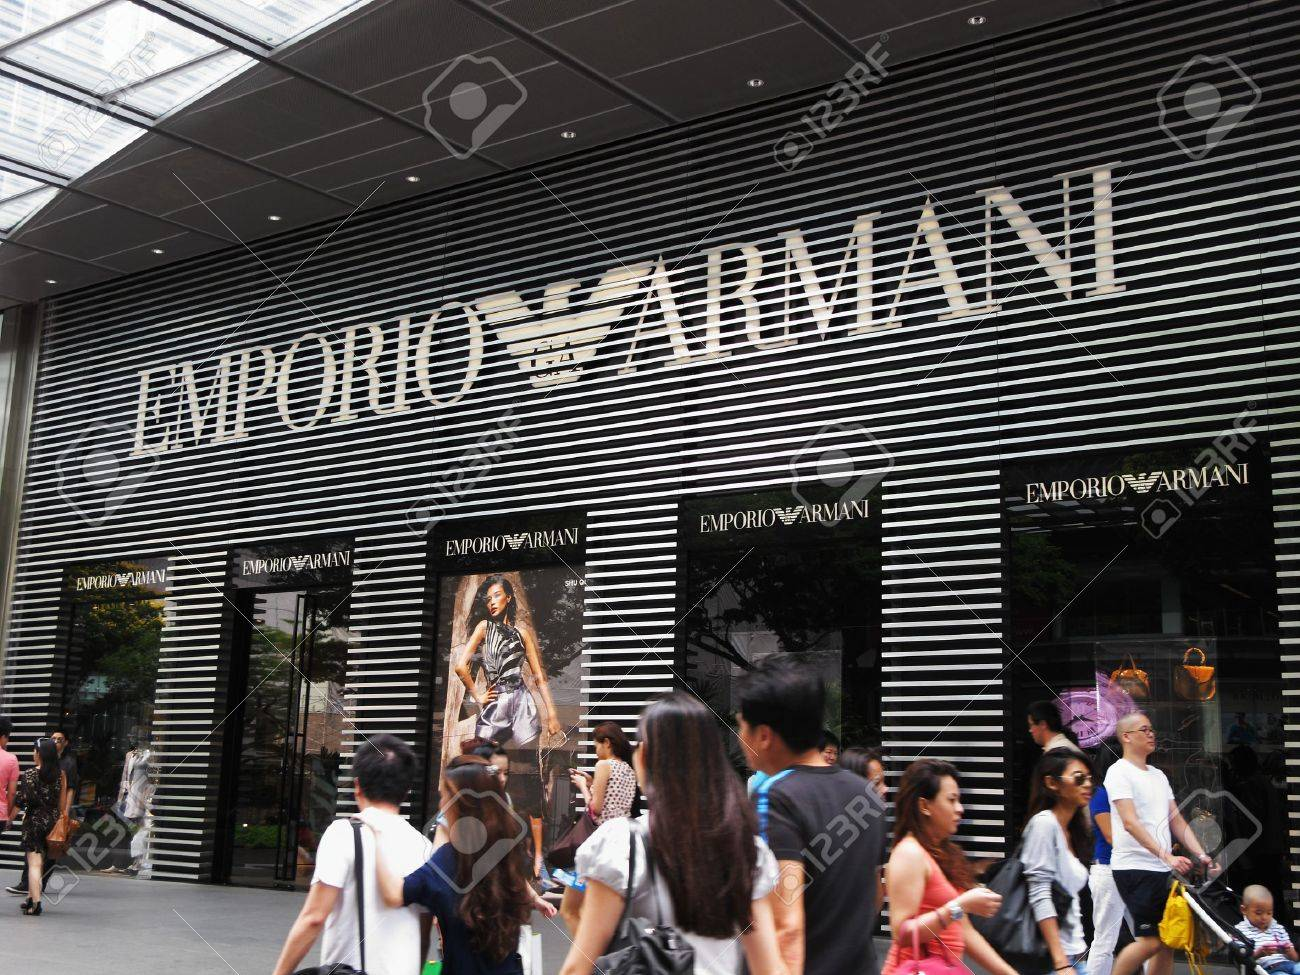 outside Mandarin Gallery mall at Orchard Road in Singapore, February 27, 2011 - shoppers walking along a pavement in front of an Emporio Armani display Stock Photo - 8944886